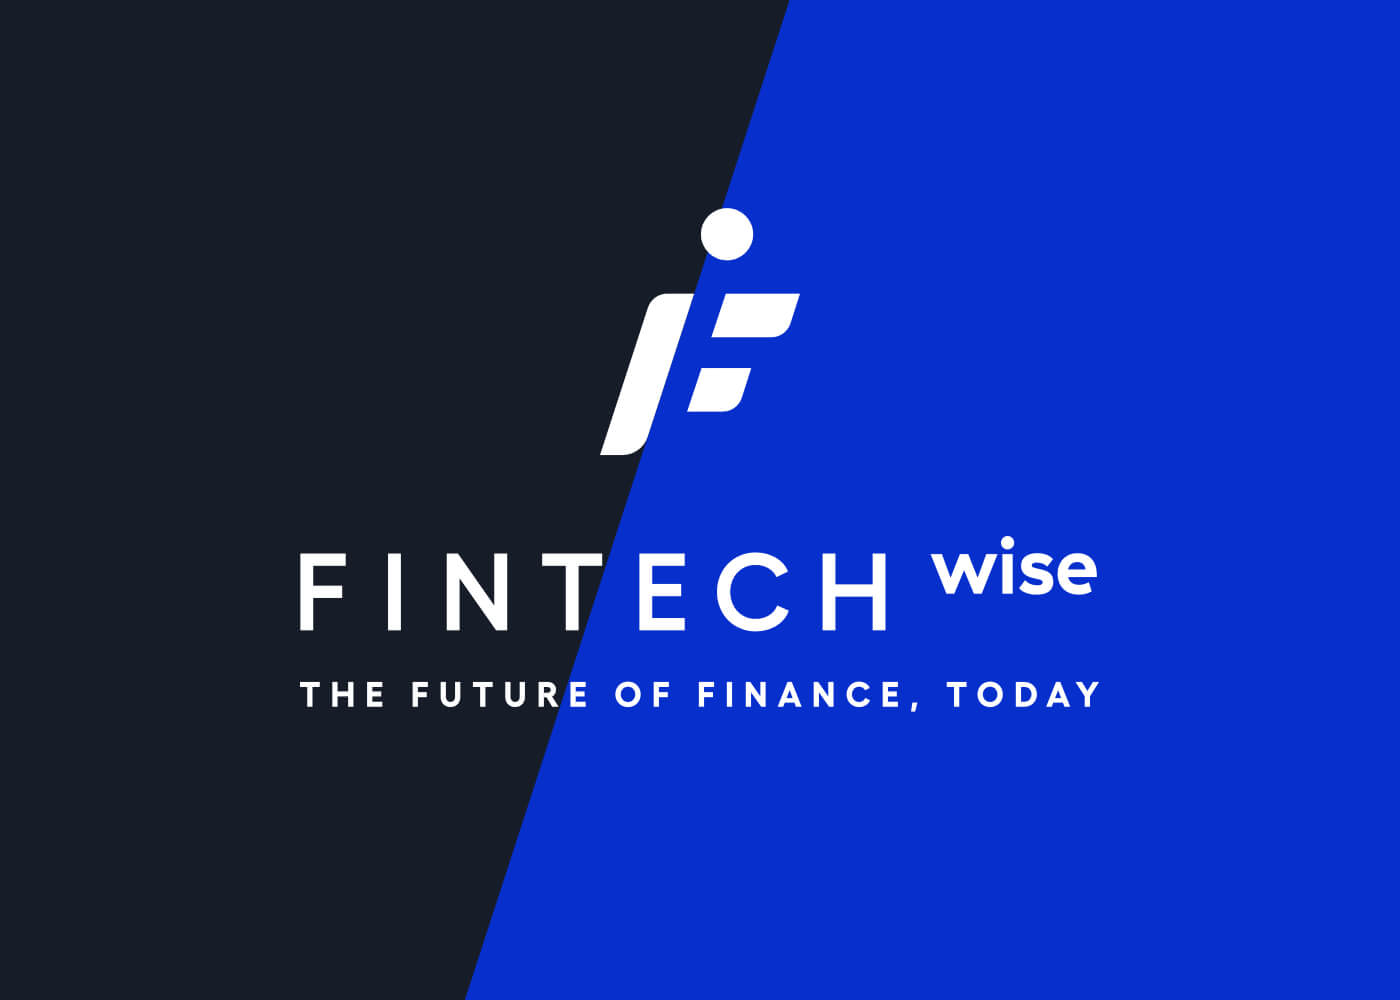 FintechWise